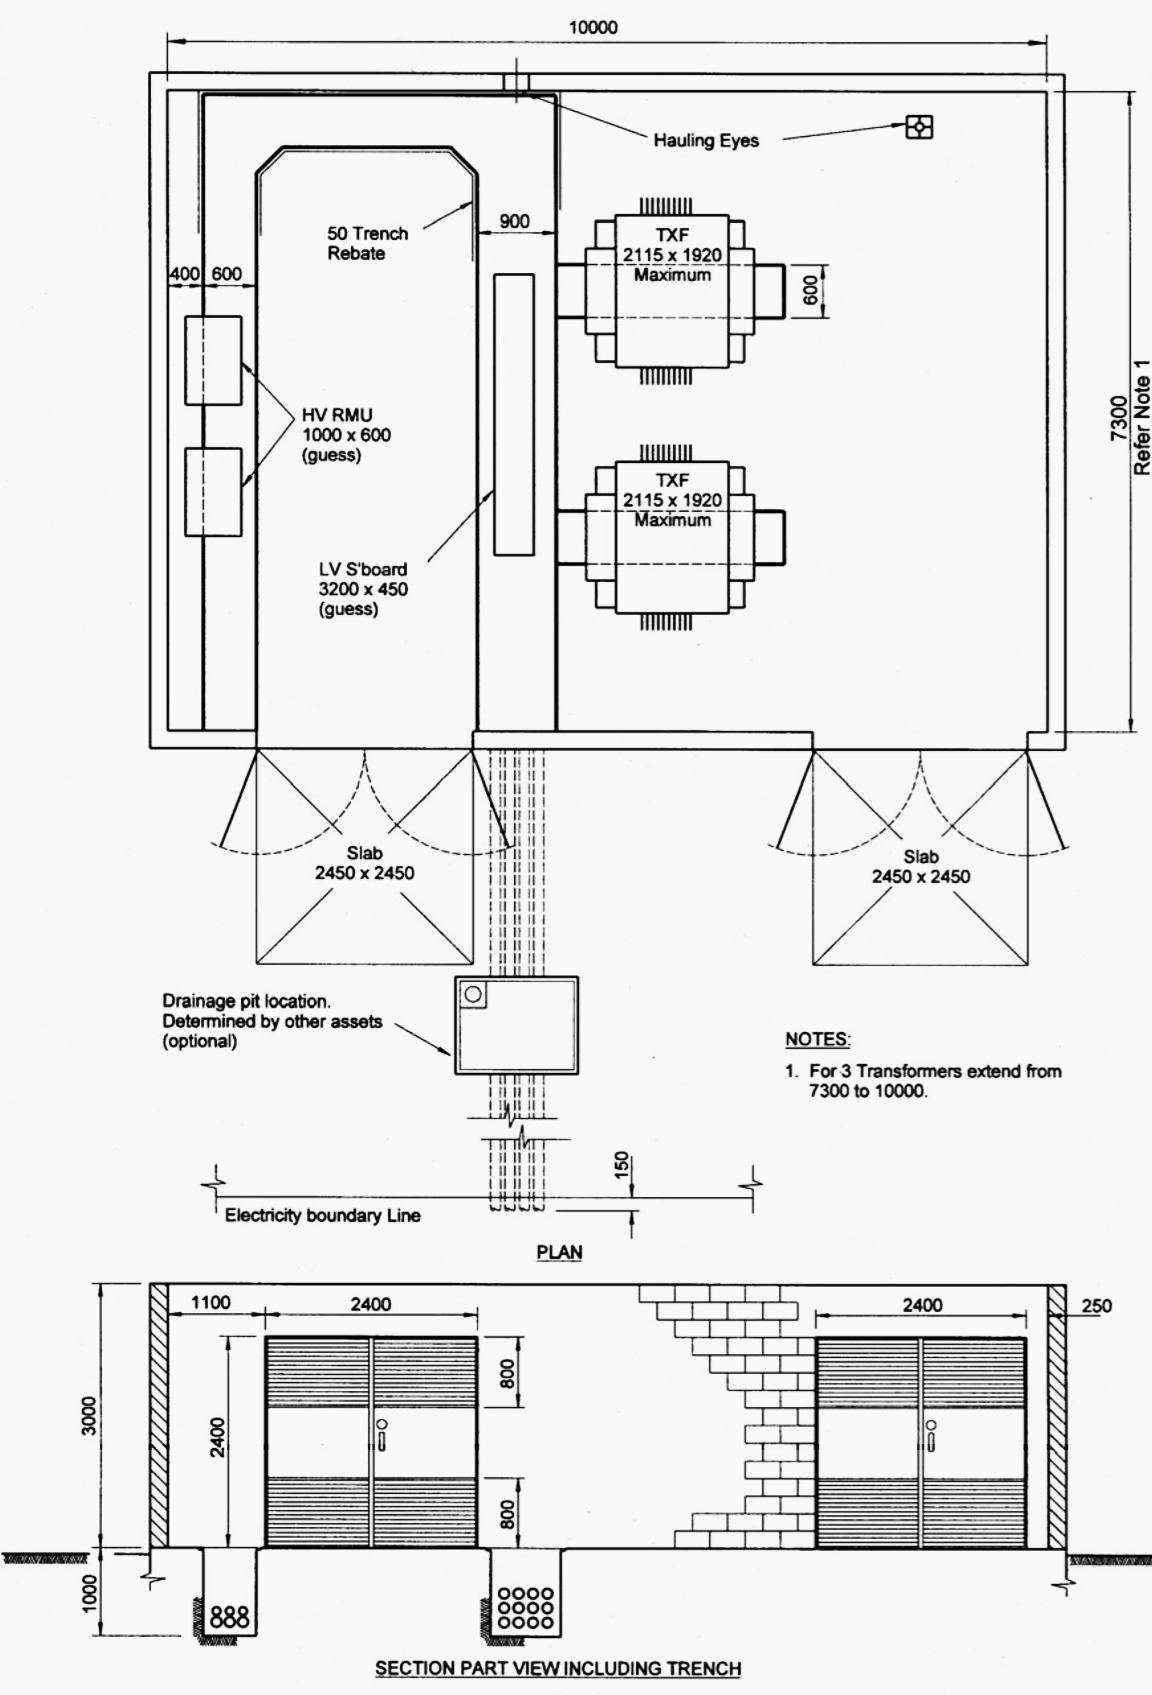 Indoor distribution substation layout with 2 transformers for Distribution substation